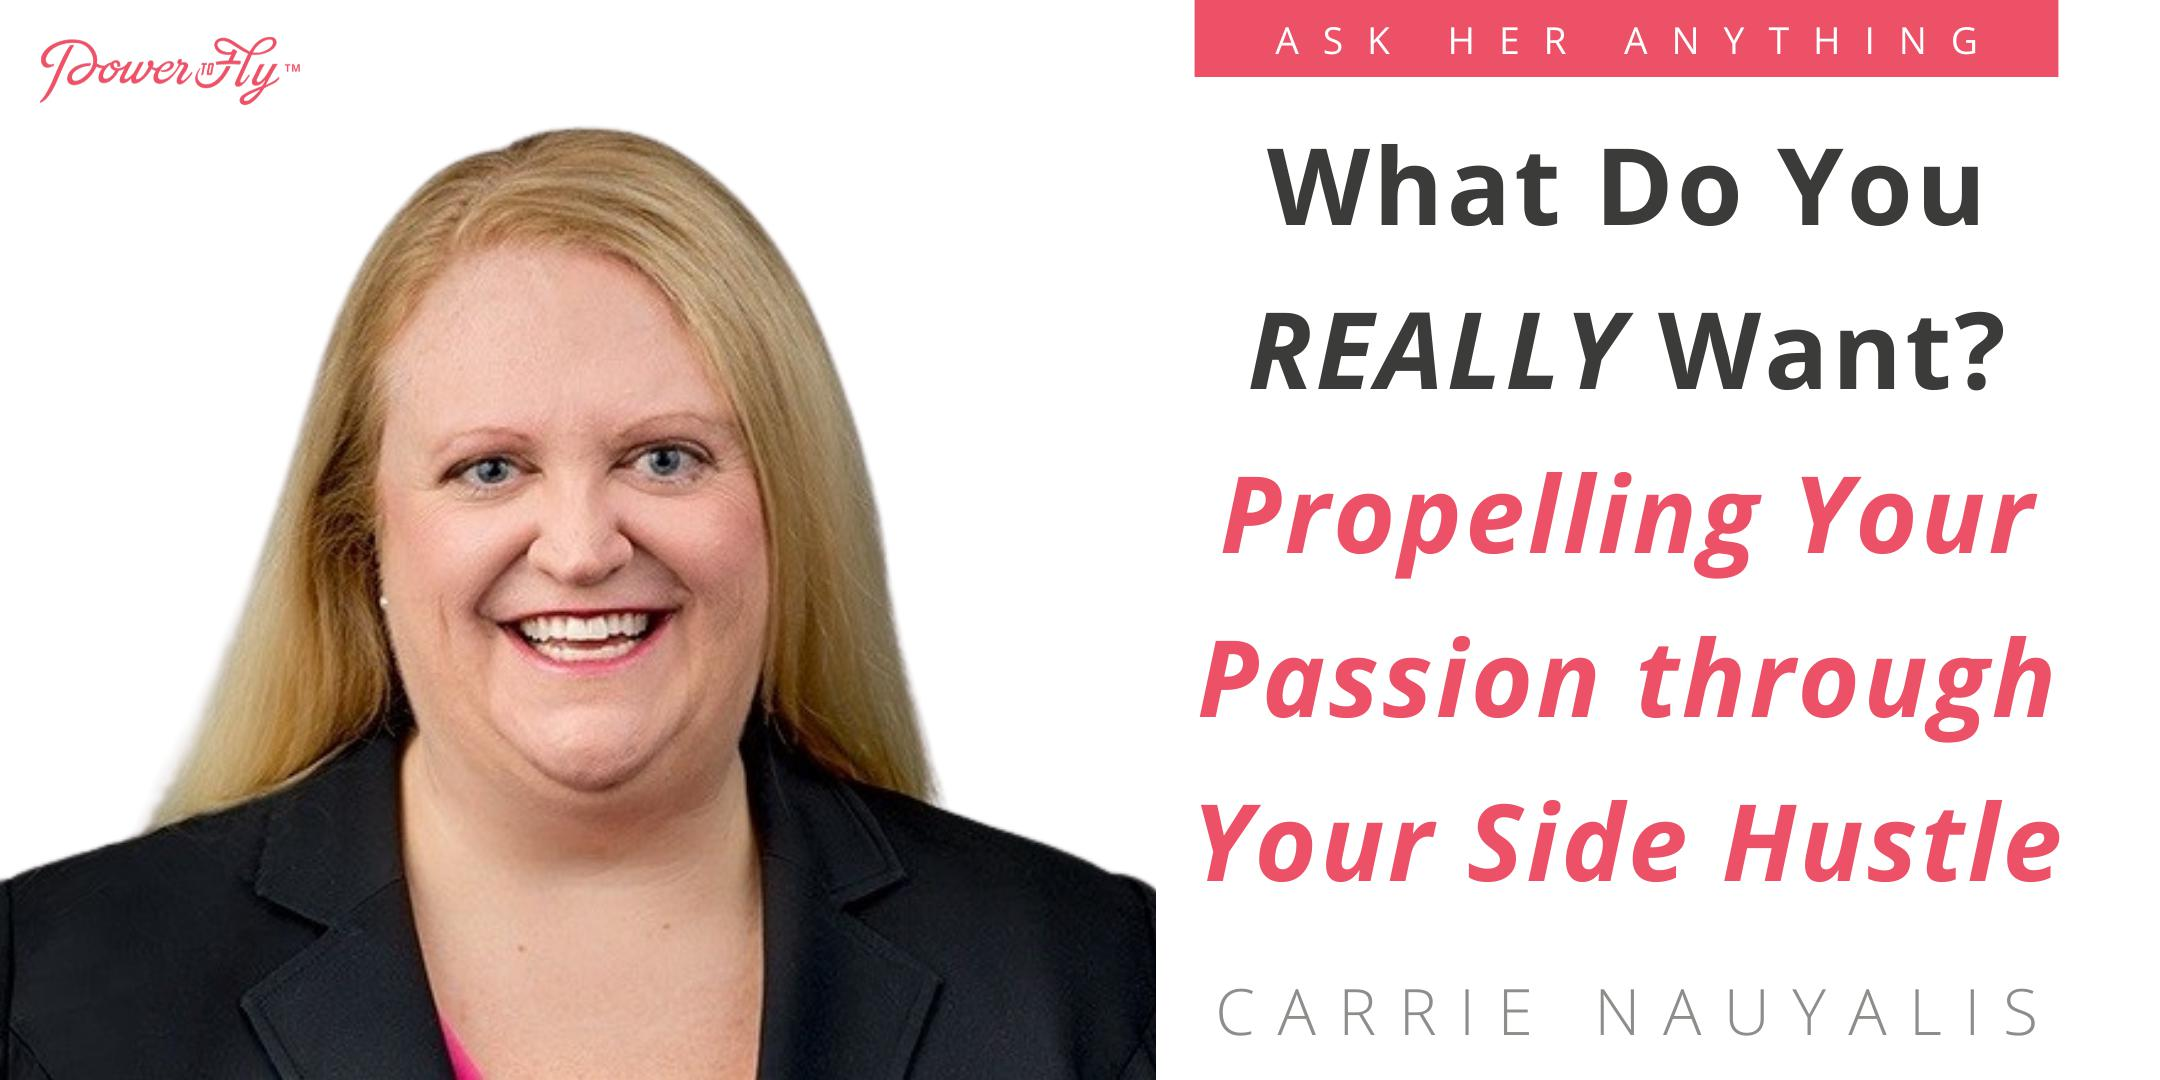 What Do You REALLY Want? Propelling Your Passion through Your Side Hustle